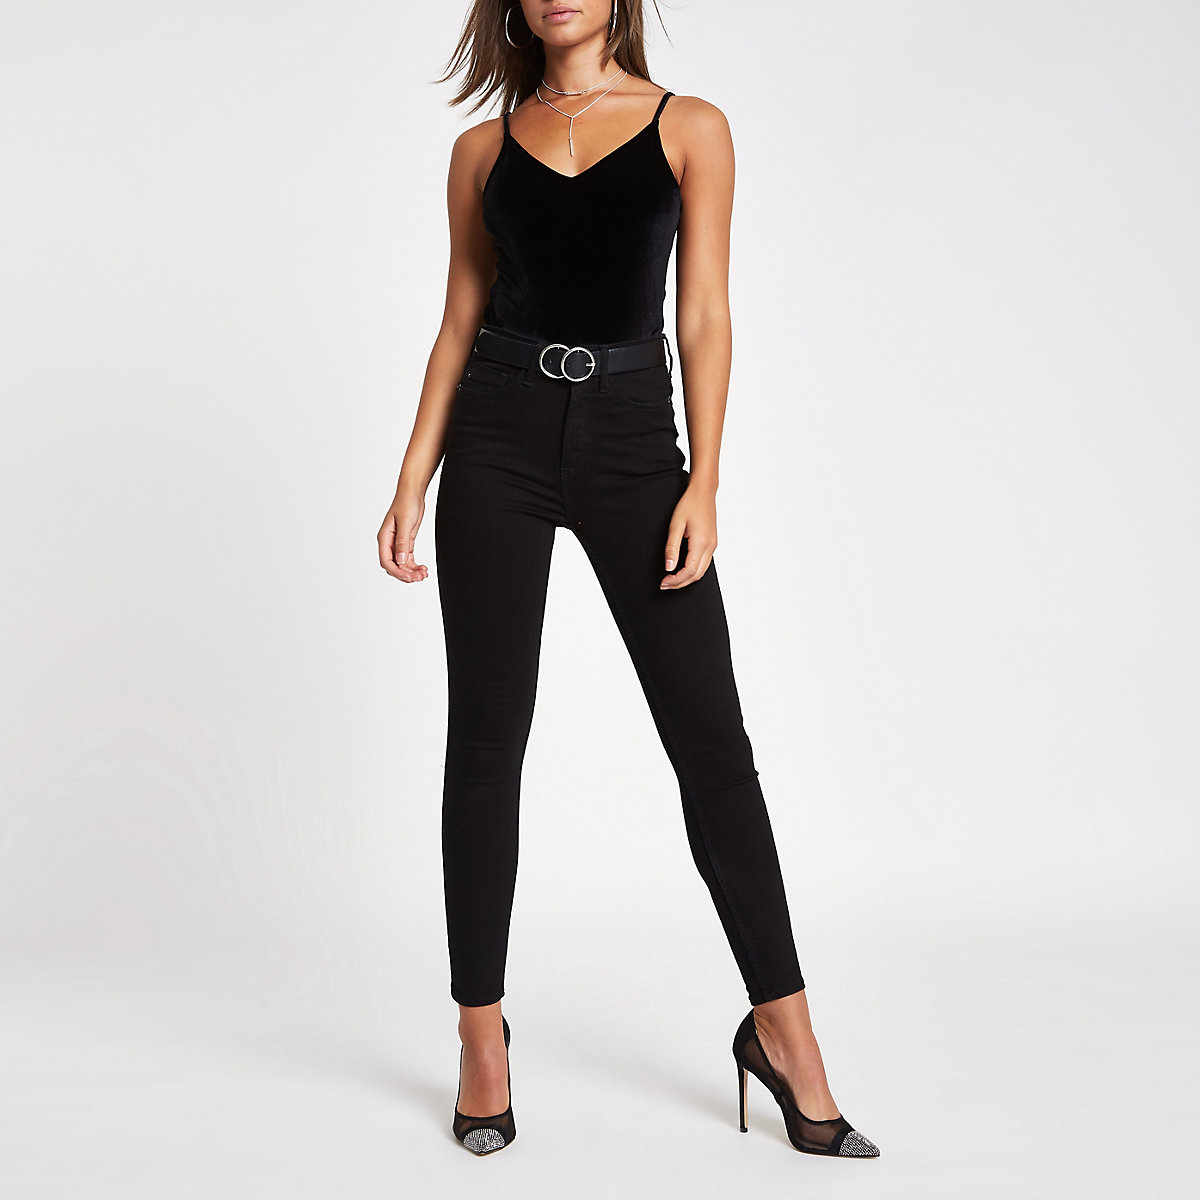 Black velvet V neck cami bodysuit